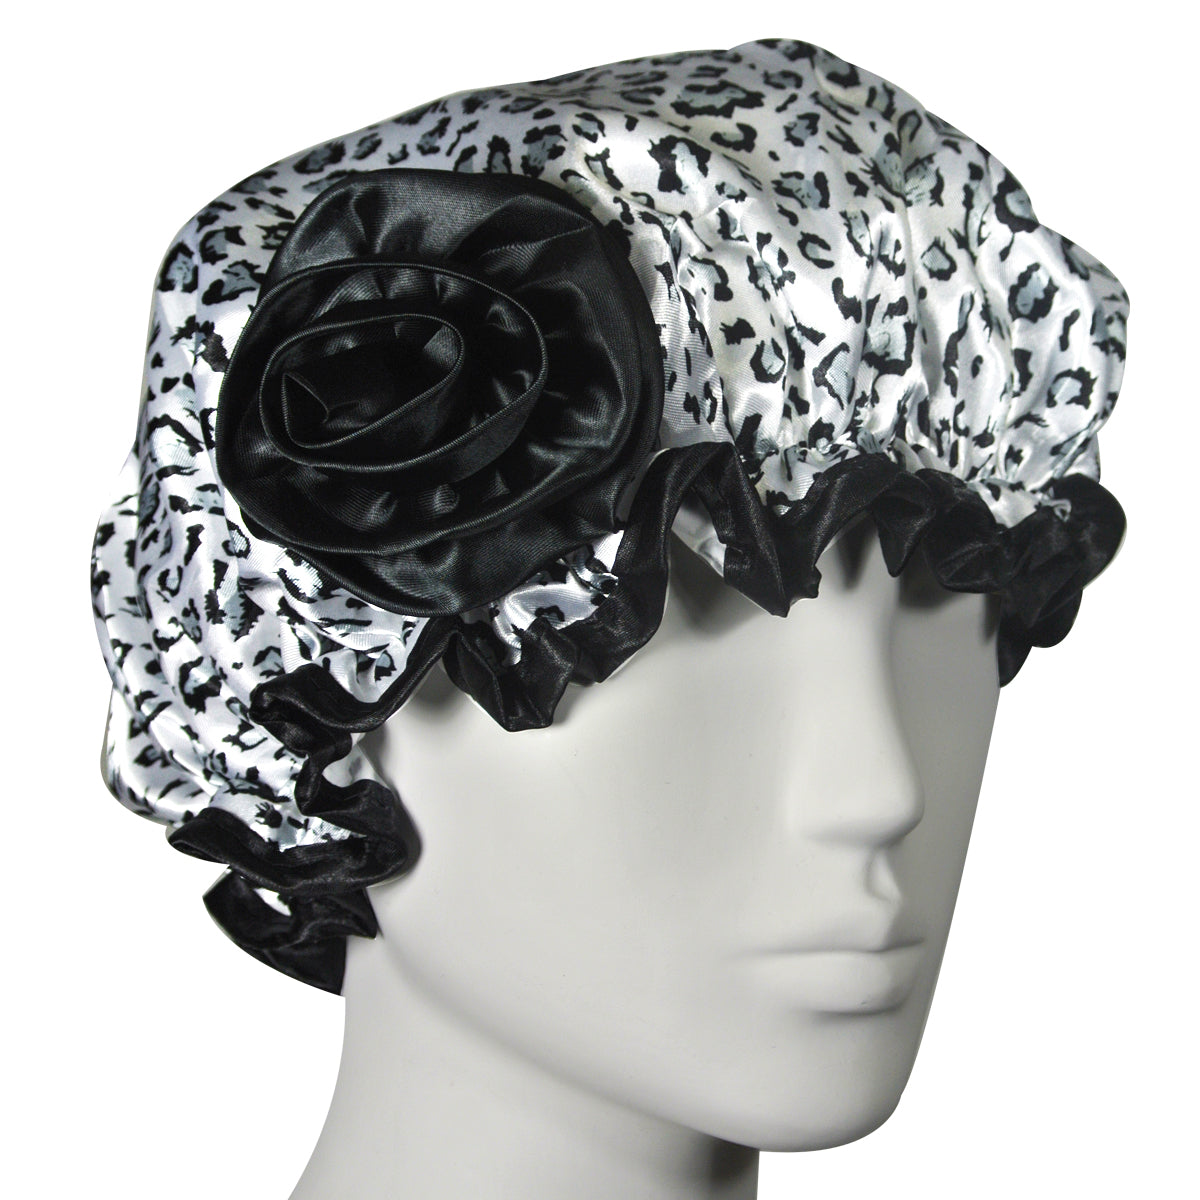 Kella Milla Stylish Satin Shower Cap